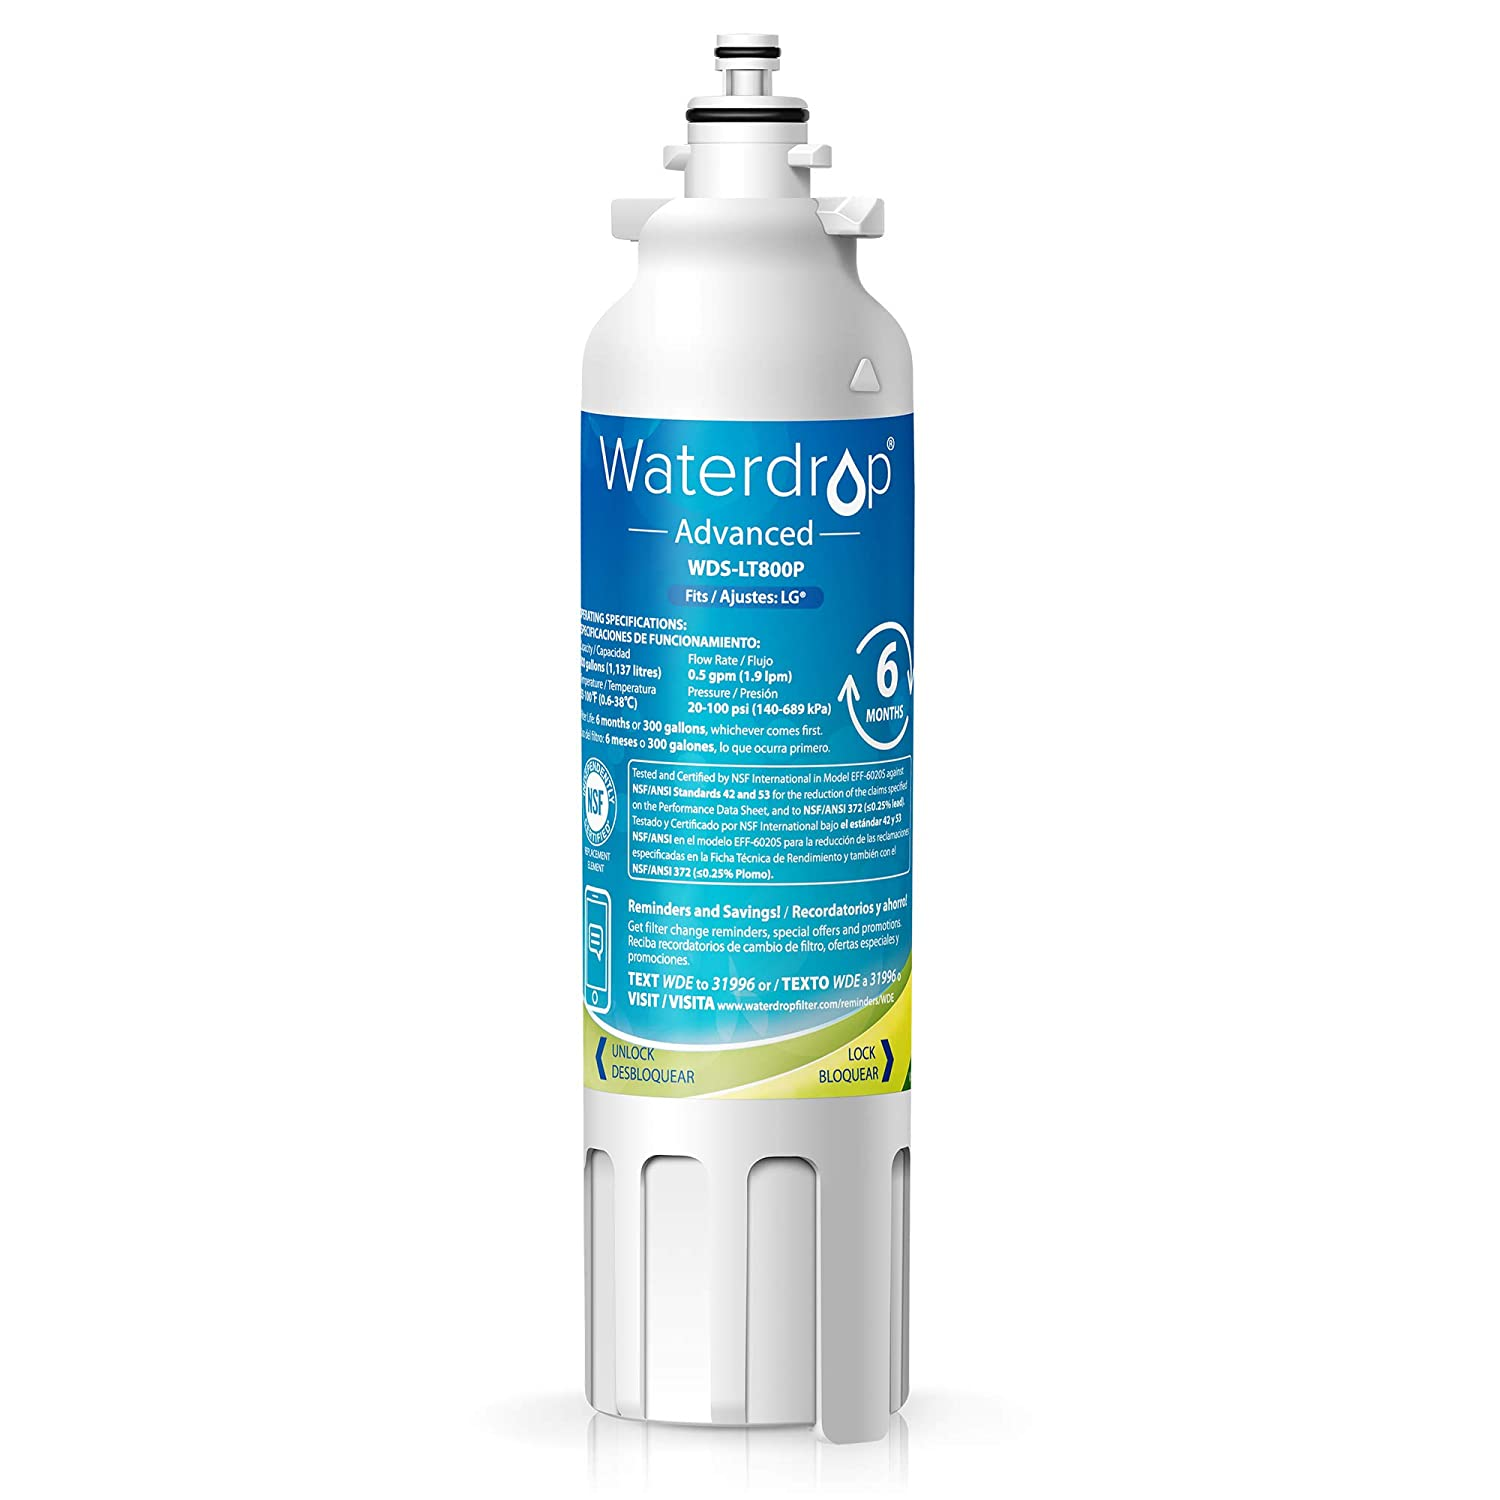 Waterdrop ADQ73613401 NSF 53&42 Certified Refrigerator Water Filter, Compatible with LG LT800P, Kenmore 9490, LSXS26326S, LMXC23746S, 46-9490, 469490, ADQ73613402, LMXC23746D, LSXS26366S